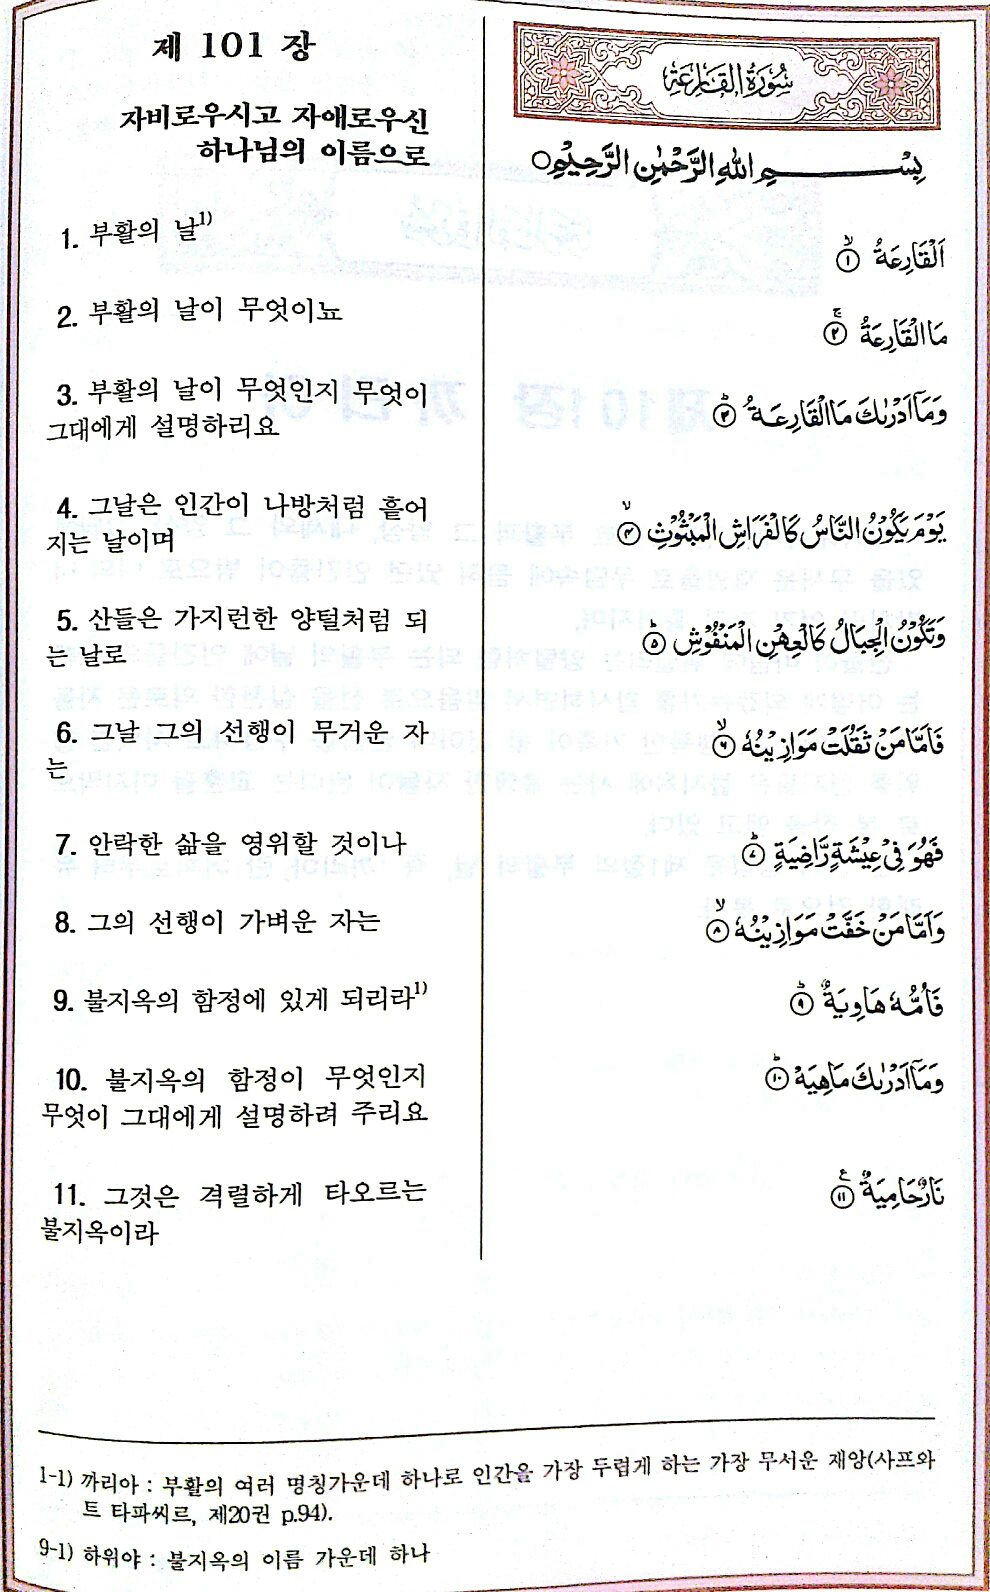 quran_korea_alqoriah